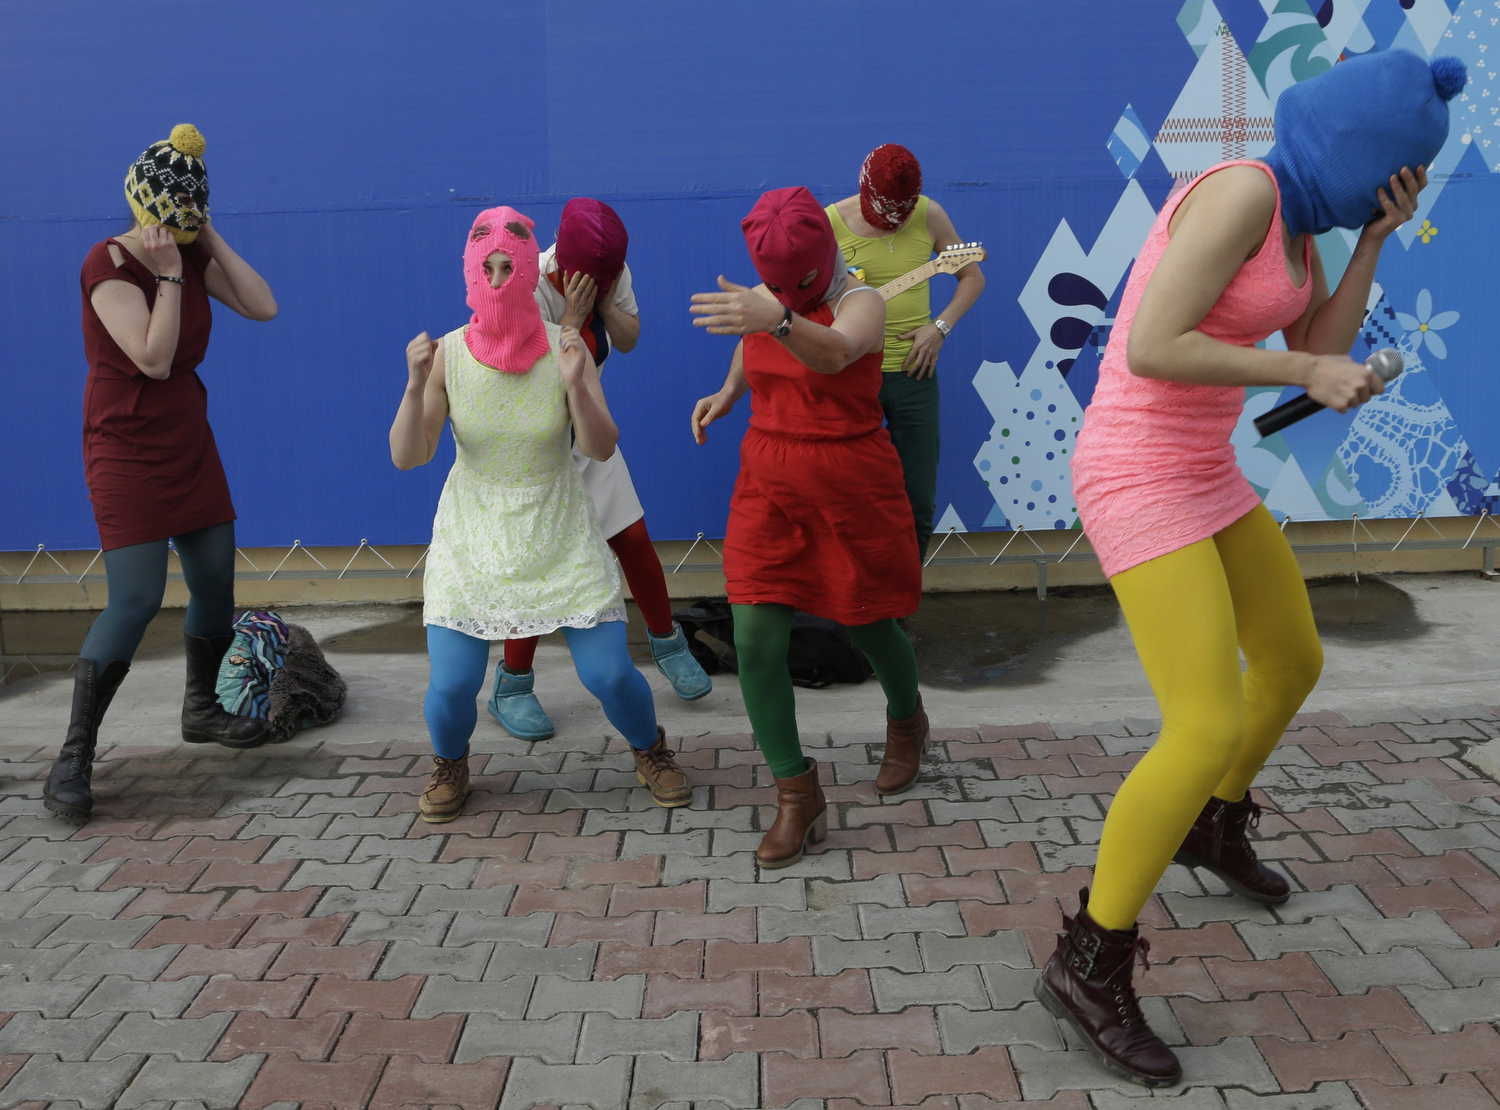 Nadezhda Tolokonnikova covers her face to protect herself from a Cossack militiaman while she and fellow members of the punk group Pussy Riot, including Maria Alekhina, second left, in the pink balaclava, stage a protest performance in Sochi, Russia, on Wednesday, Feb. 19, 2014.